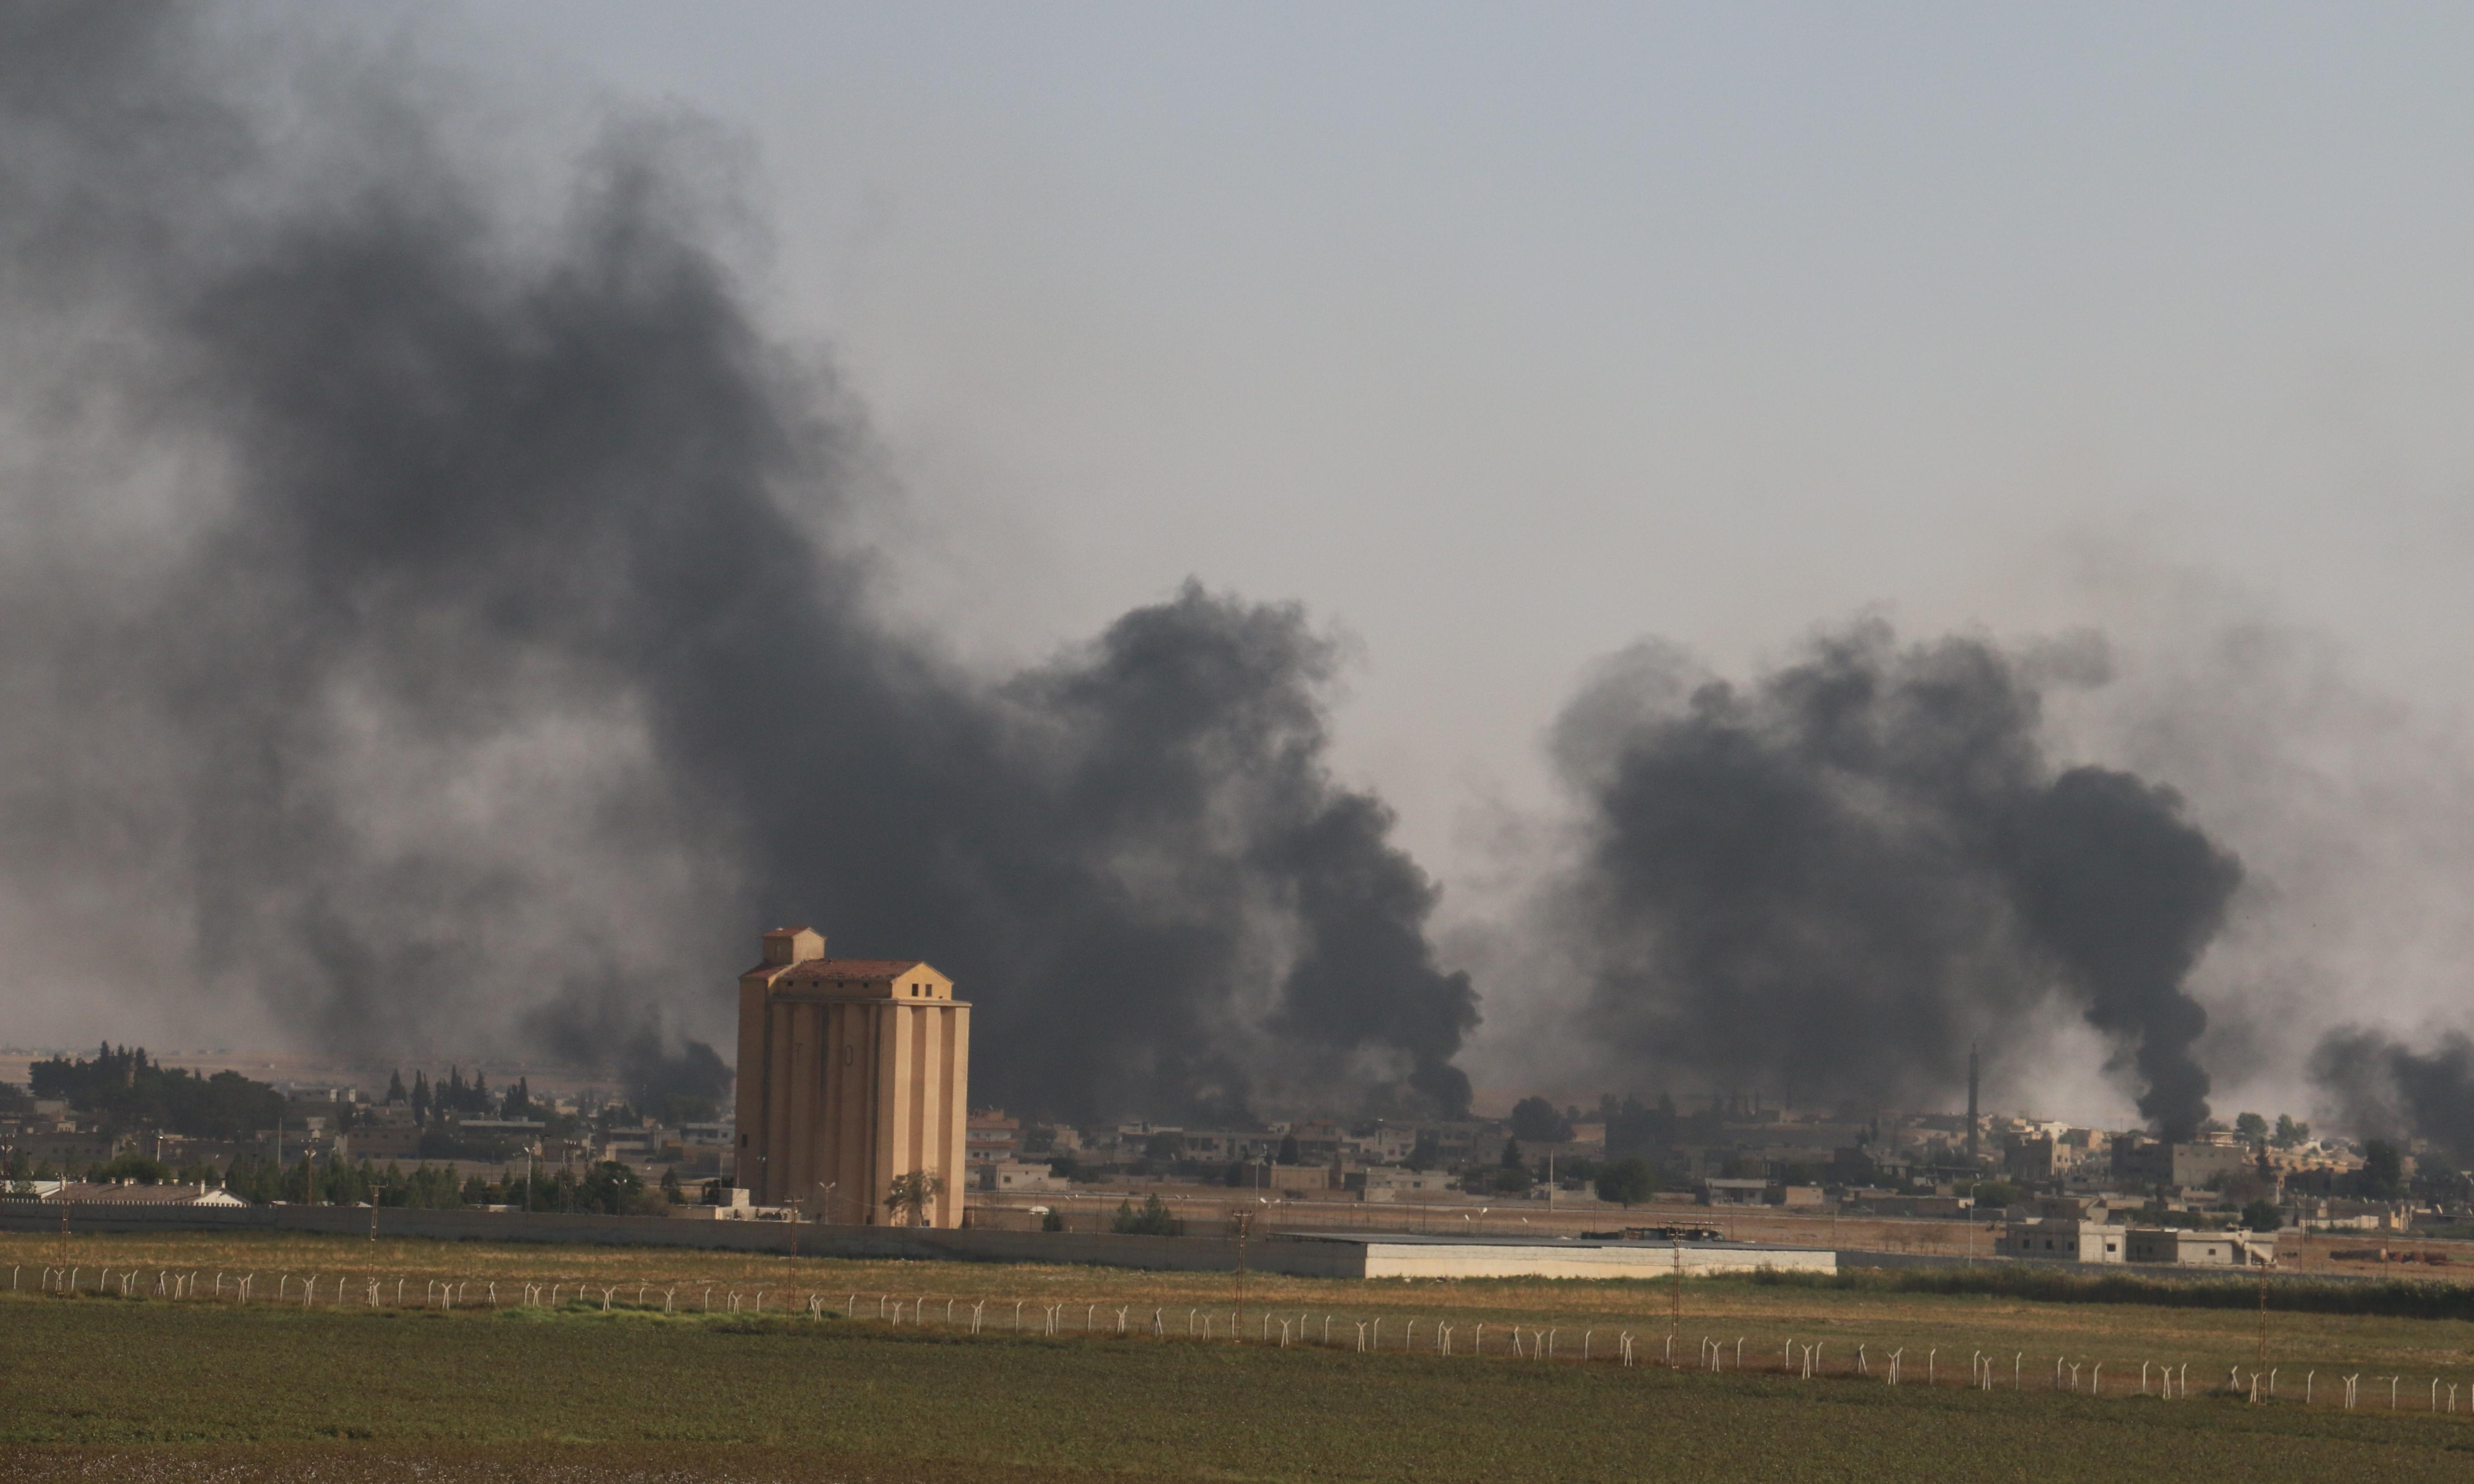 US warns Turkey of red lines as Syria offensive death toll mounts